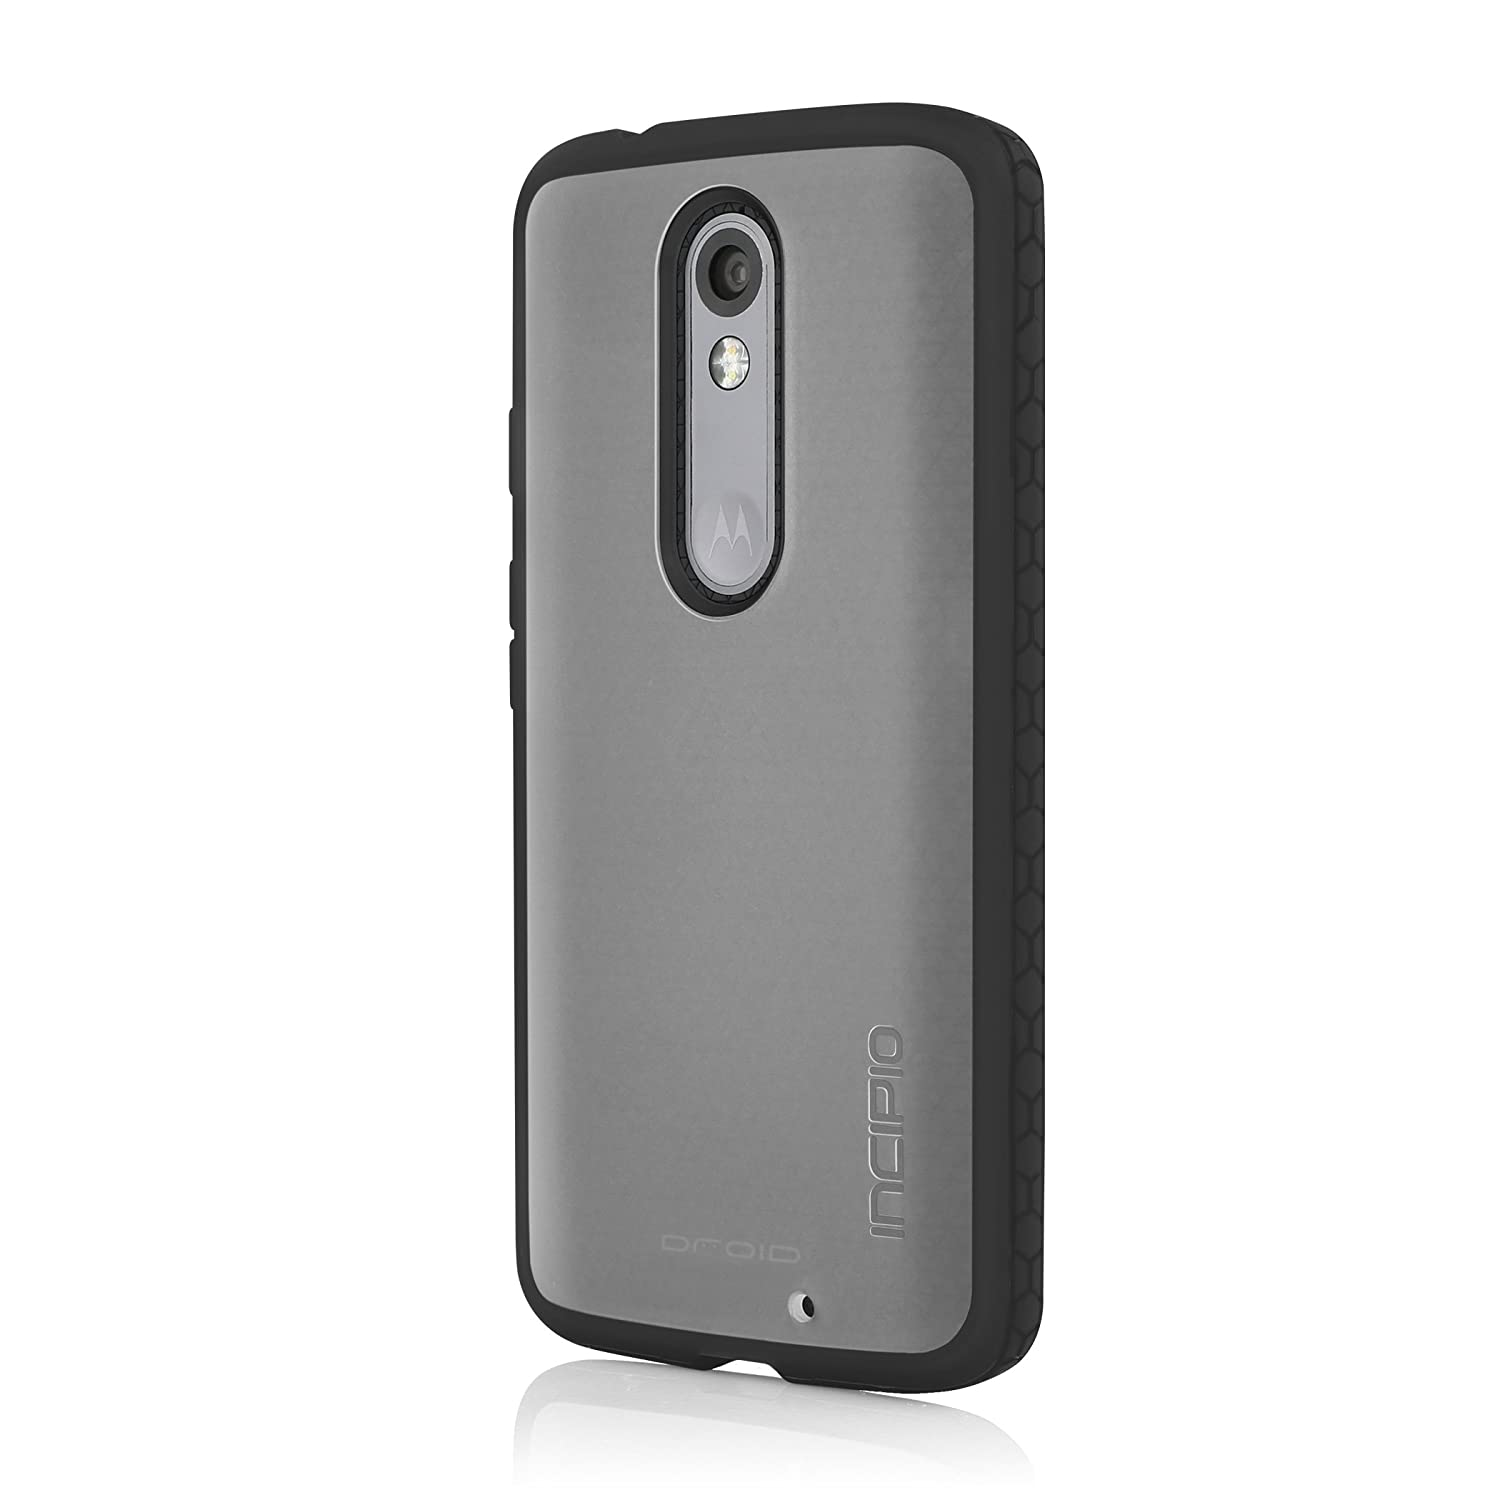 size 40 4786f 8b913 Motorola Droid Turbo 2 / Moto X Force Case, Incipio [Co-Molded Case][Shock  Absorbing] Octane Case for Motorola Droid Turbo 2 / Moto X ...